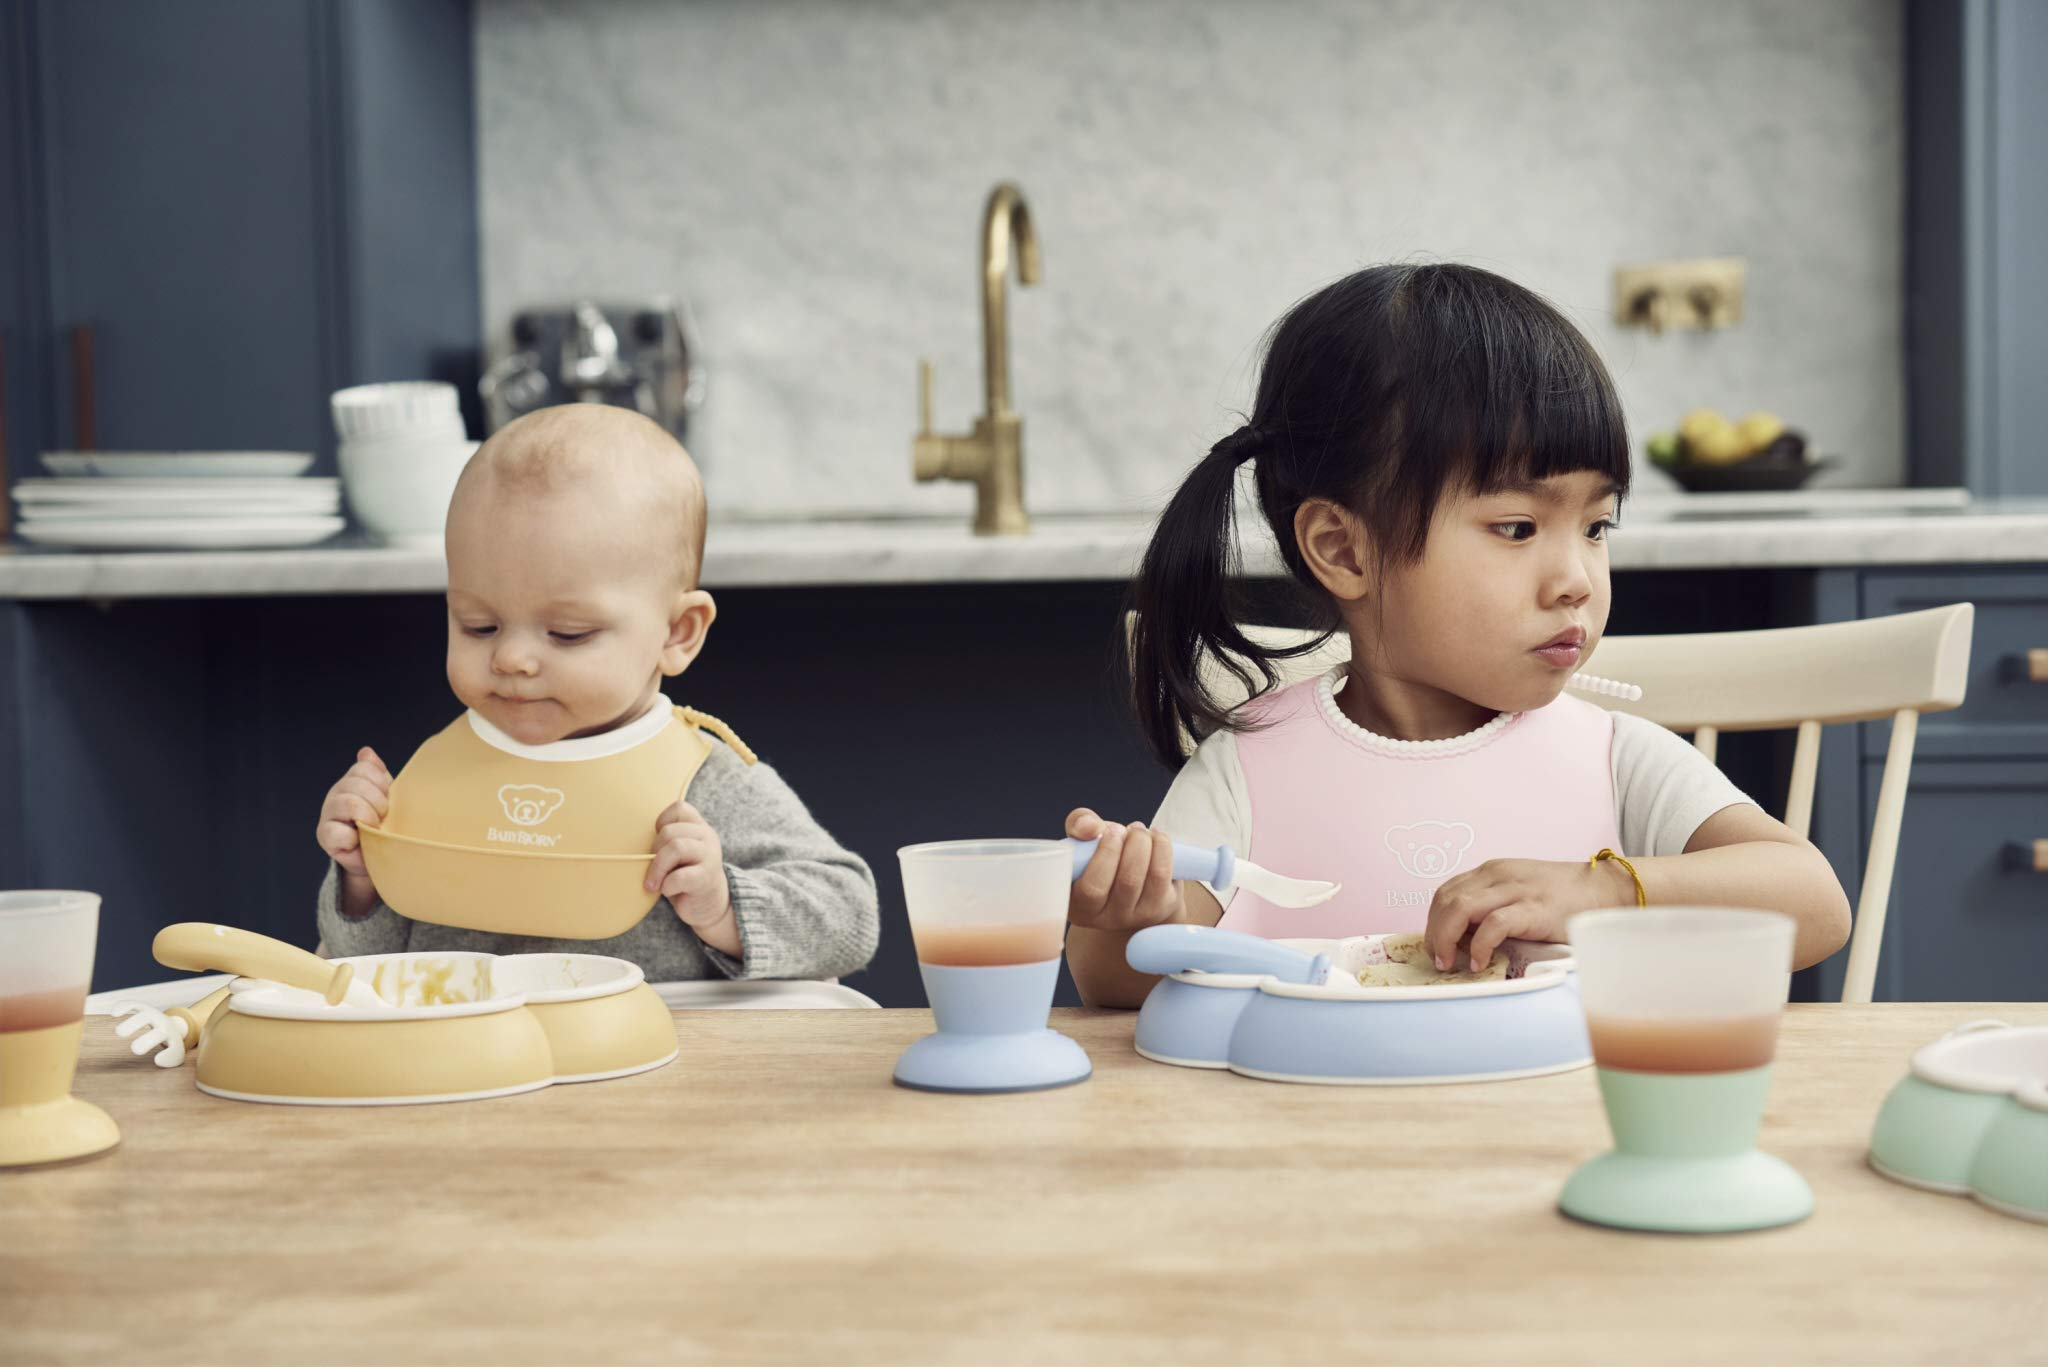 BABYBJORN Baby 2 Piece Plate, Spoon and Fork, Powder Blue by BabyBjörn (Image #3)